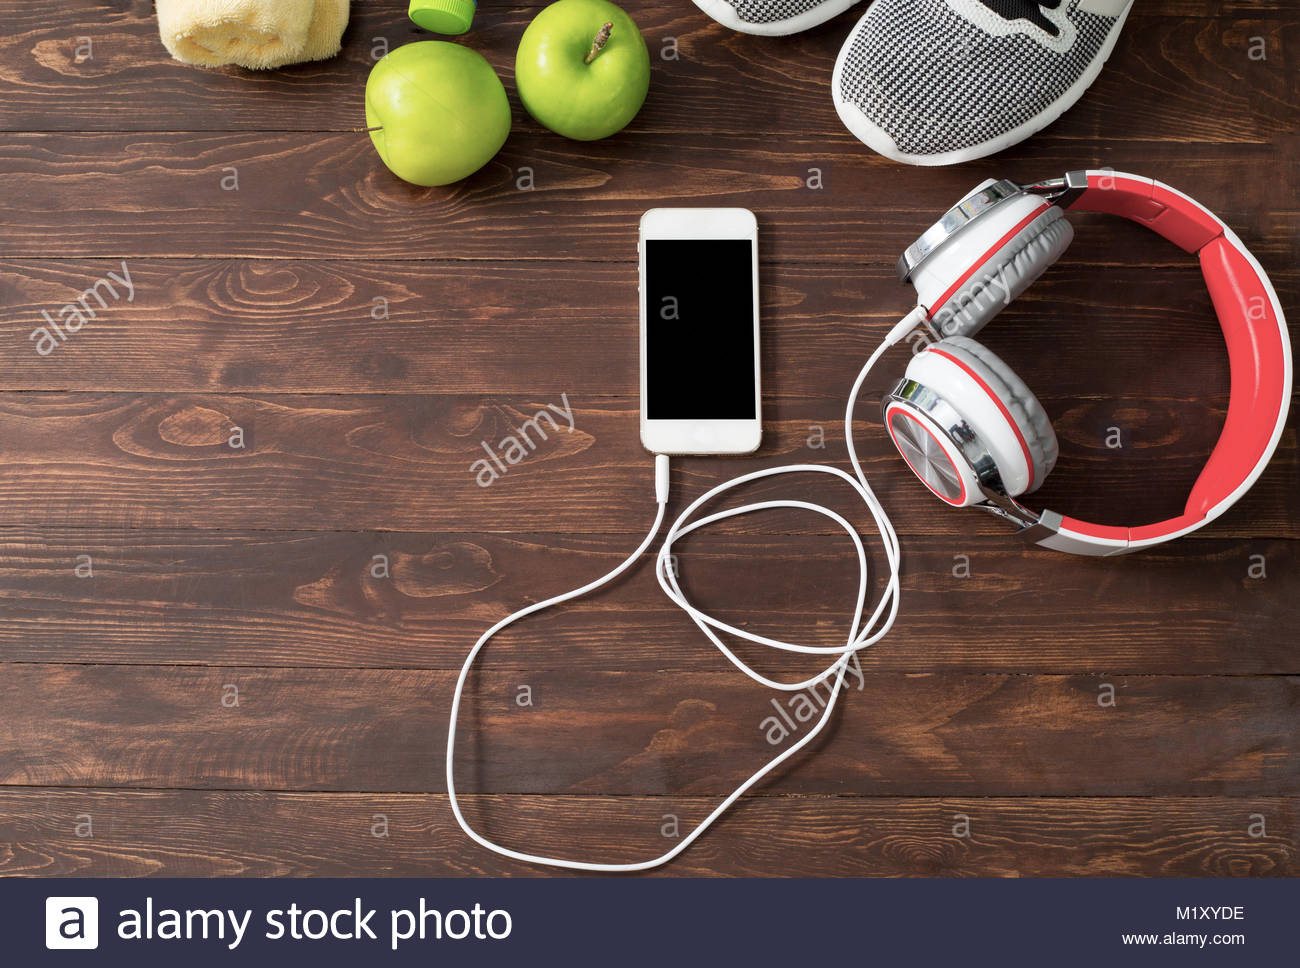 fitness concept with Exercise Equipment on wooden background. - Stock Image